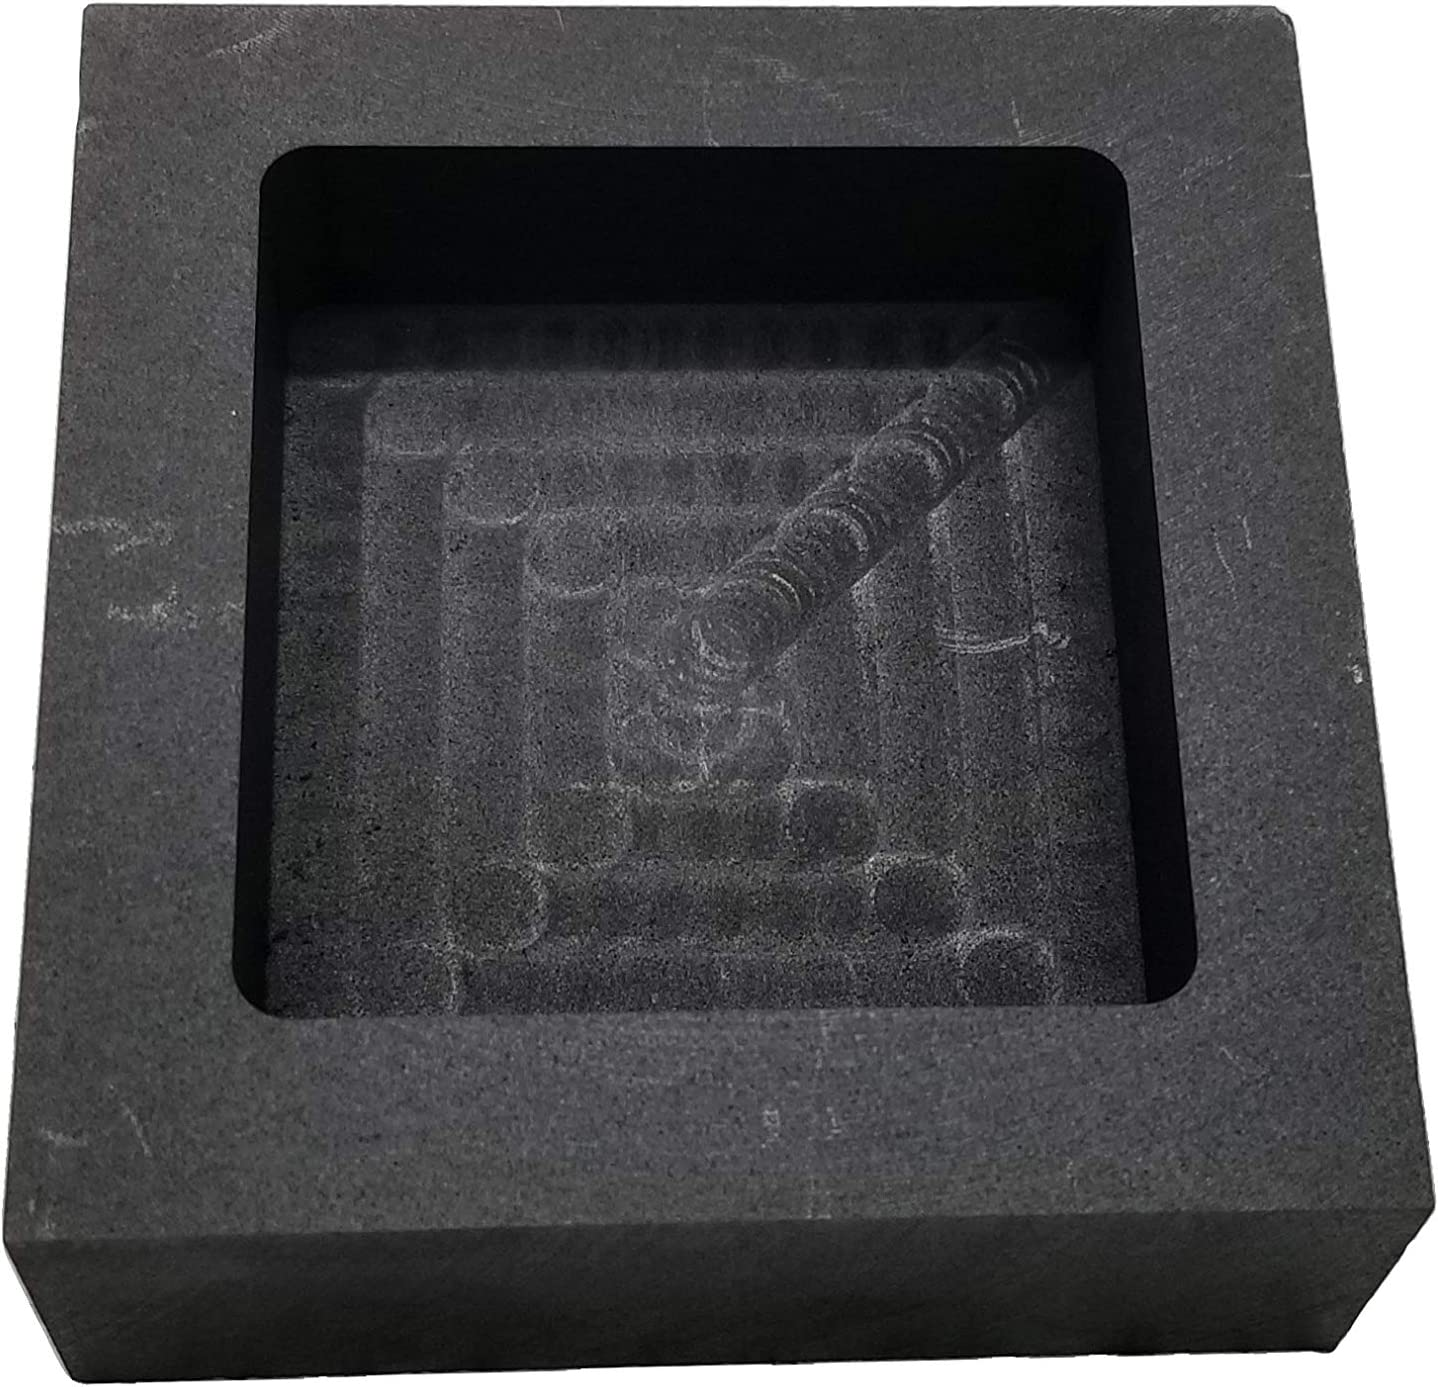 1,000 Grams Graphite Ingot Mold Crucible Mould for Casting Molding and Refining Jewelry Tool